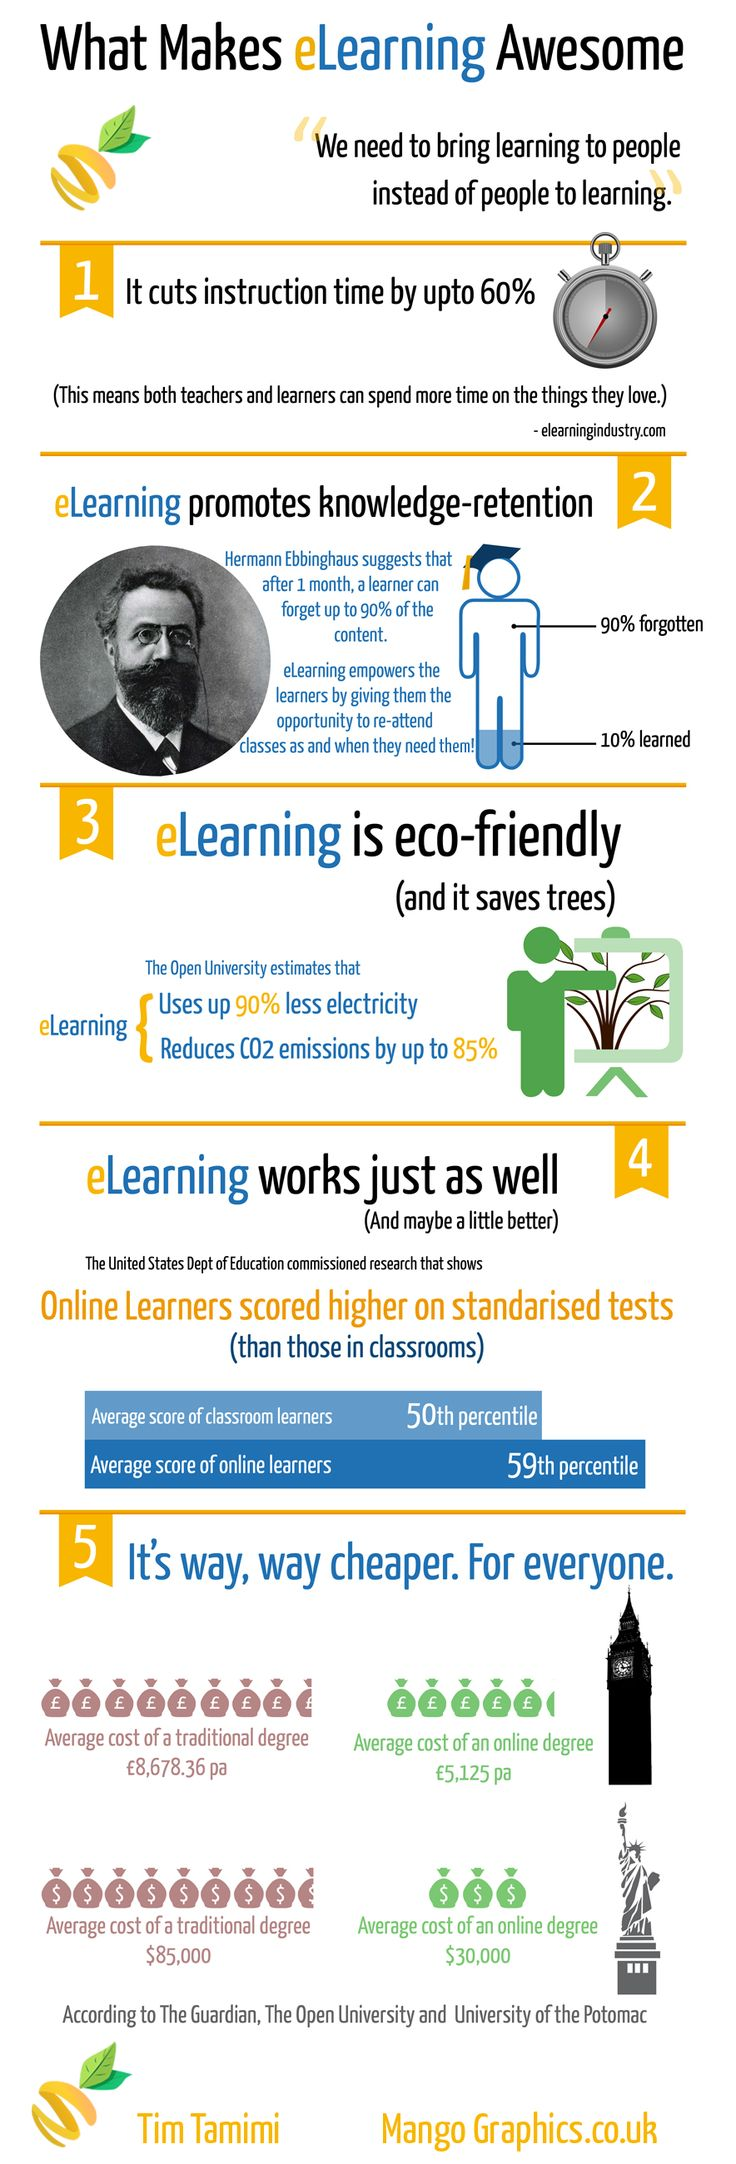 What Makes #OnlineLearning Awesome? #eLearning